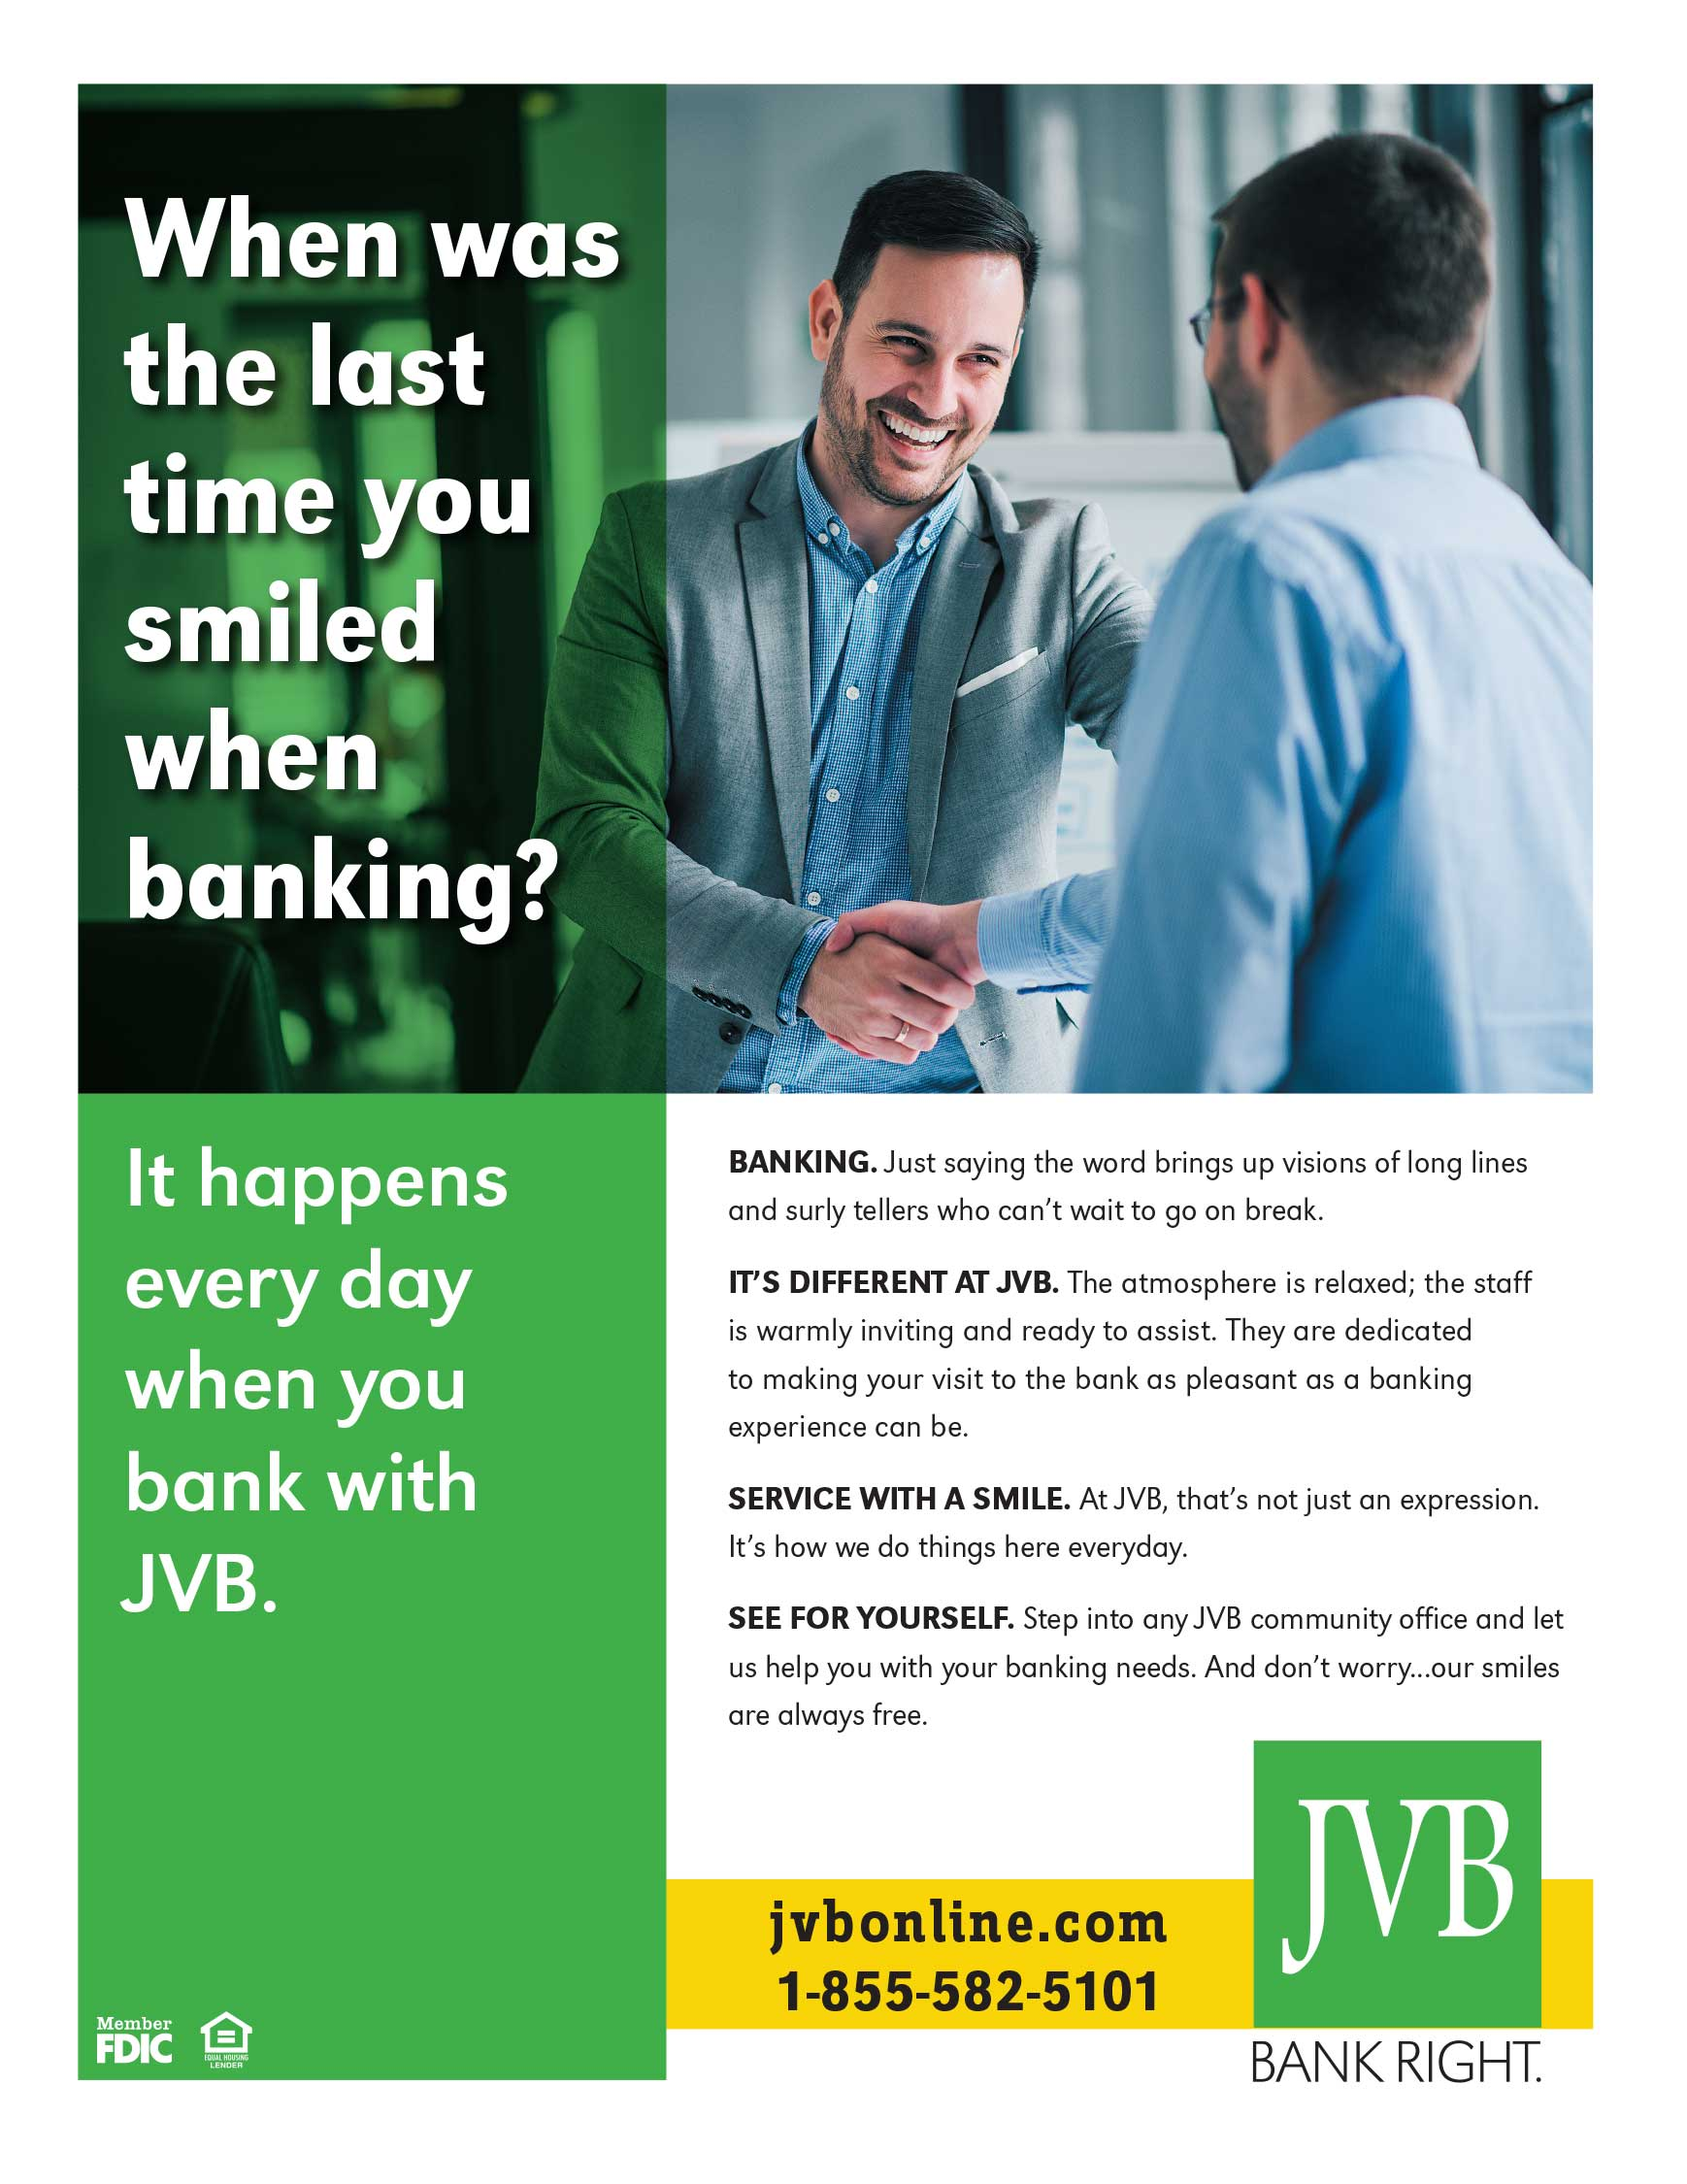 "<center>Juniata Valley Bank | <b><a href=""http://www.jvbonline.com"" target=""_blank"" rel=""noopener noreferrer"">CLICK HERE to view the JVB Bank website</a></b></center>"